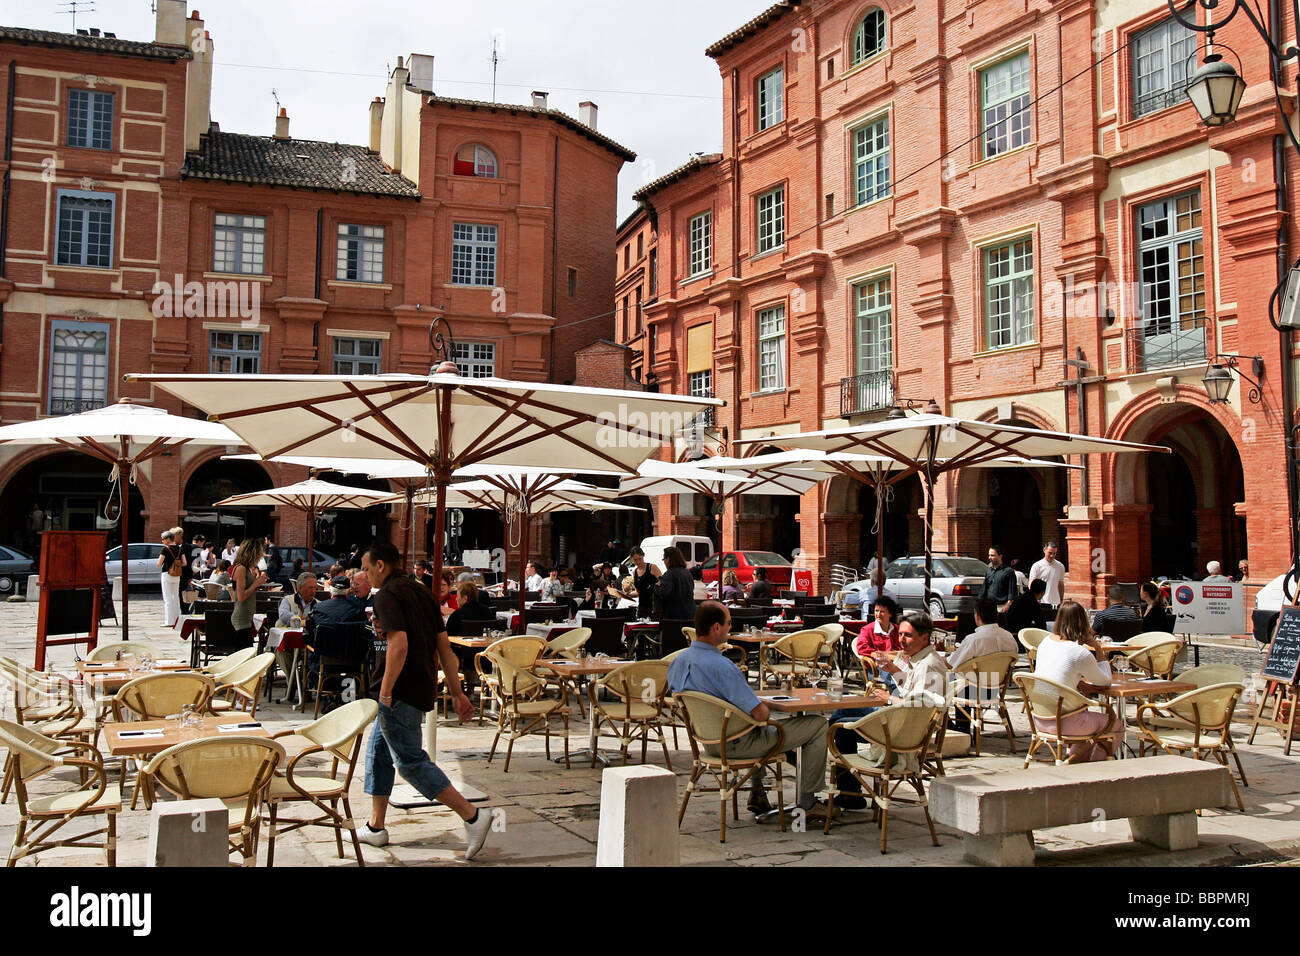 SIDEWALK CAFES AND RESTAURANTS ON THE PLACE NATIONALE, TOWN OF MONTAUBAN, TARN-ET-GARONNE (82), FRANCE - Stock Image